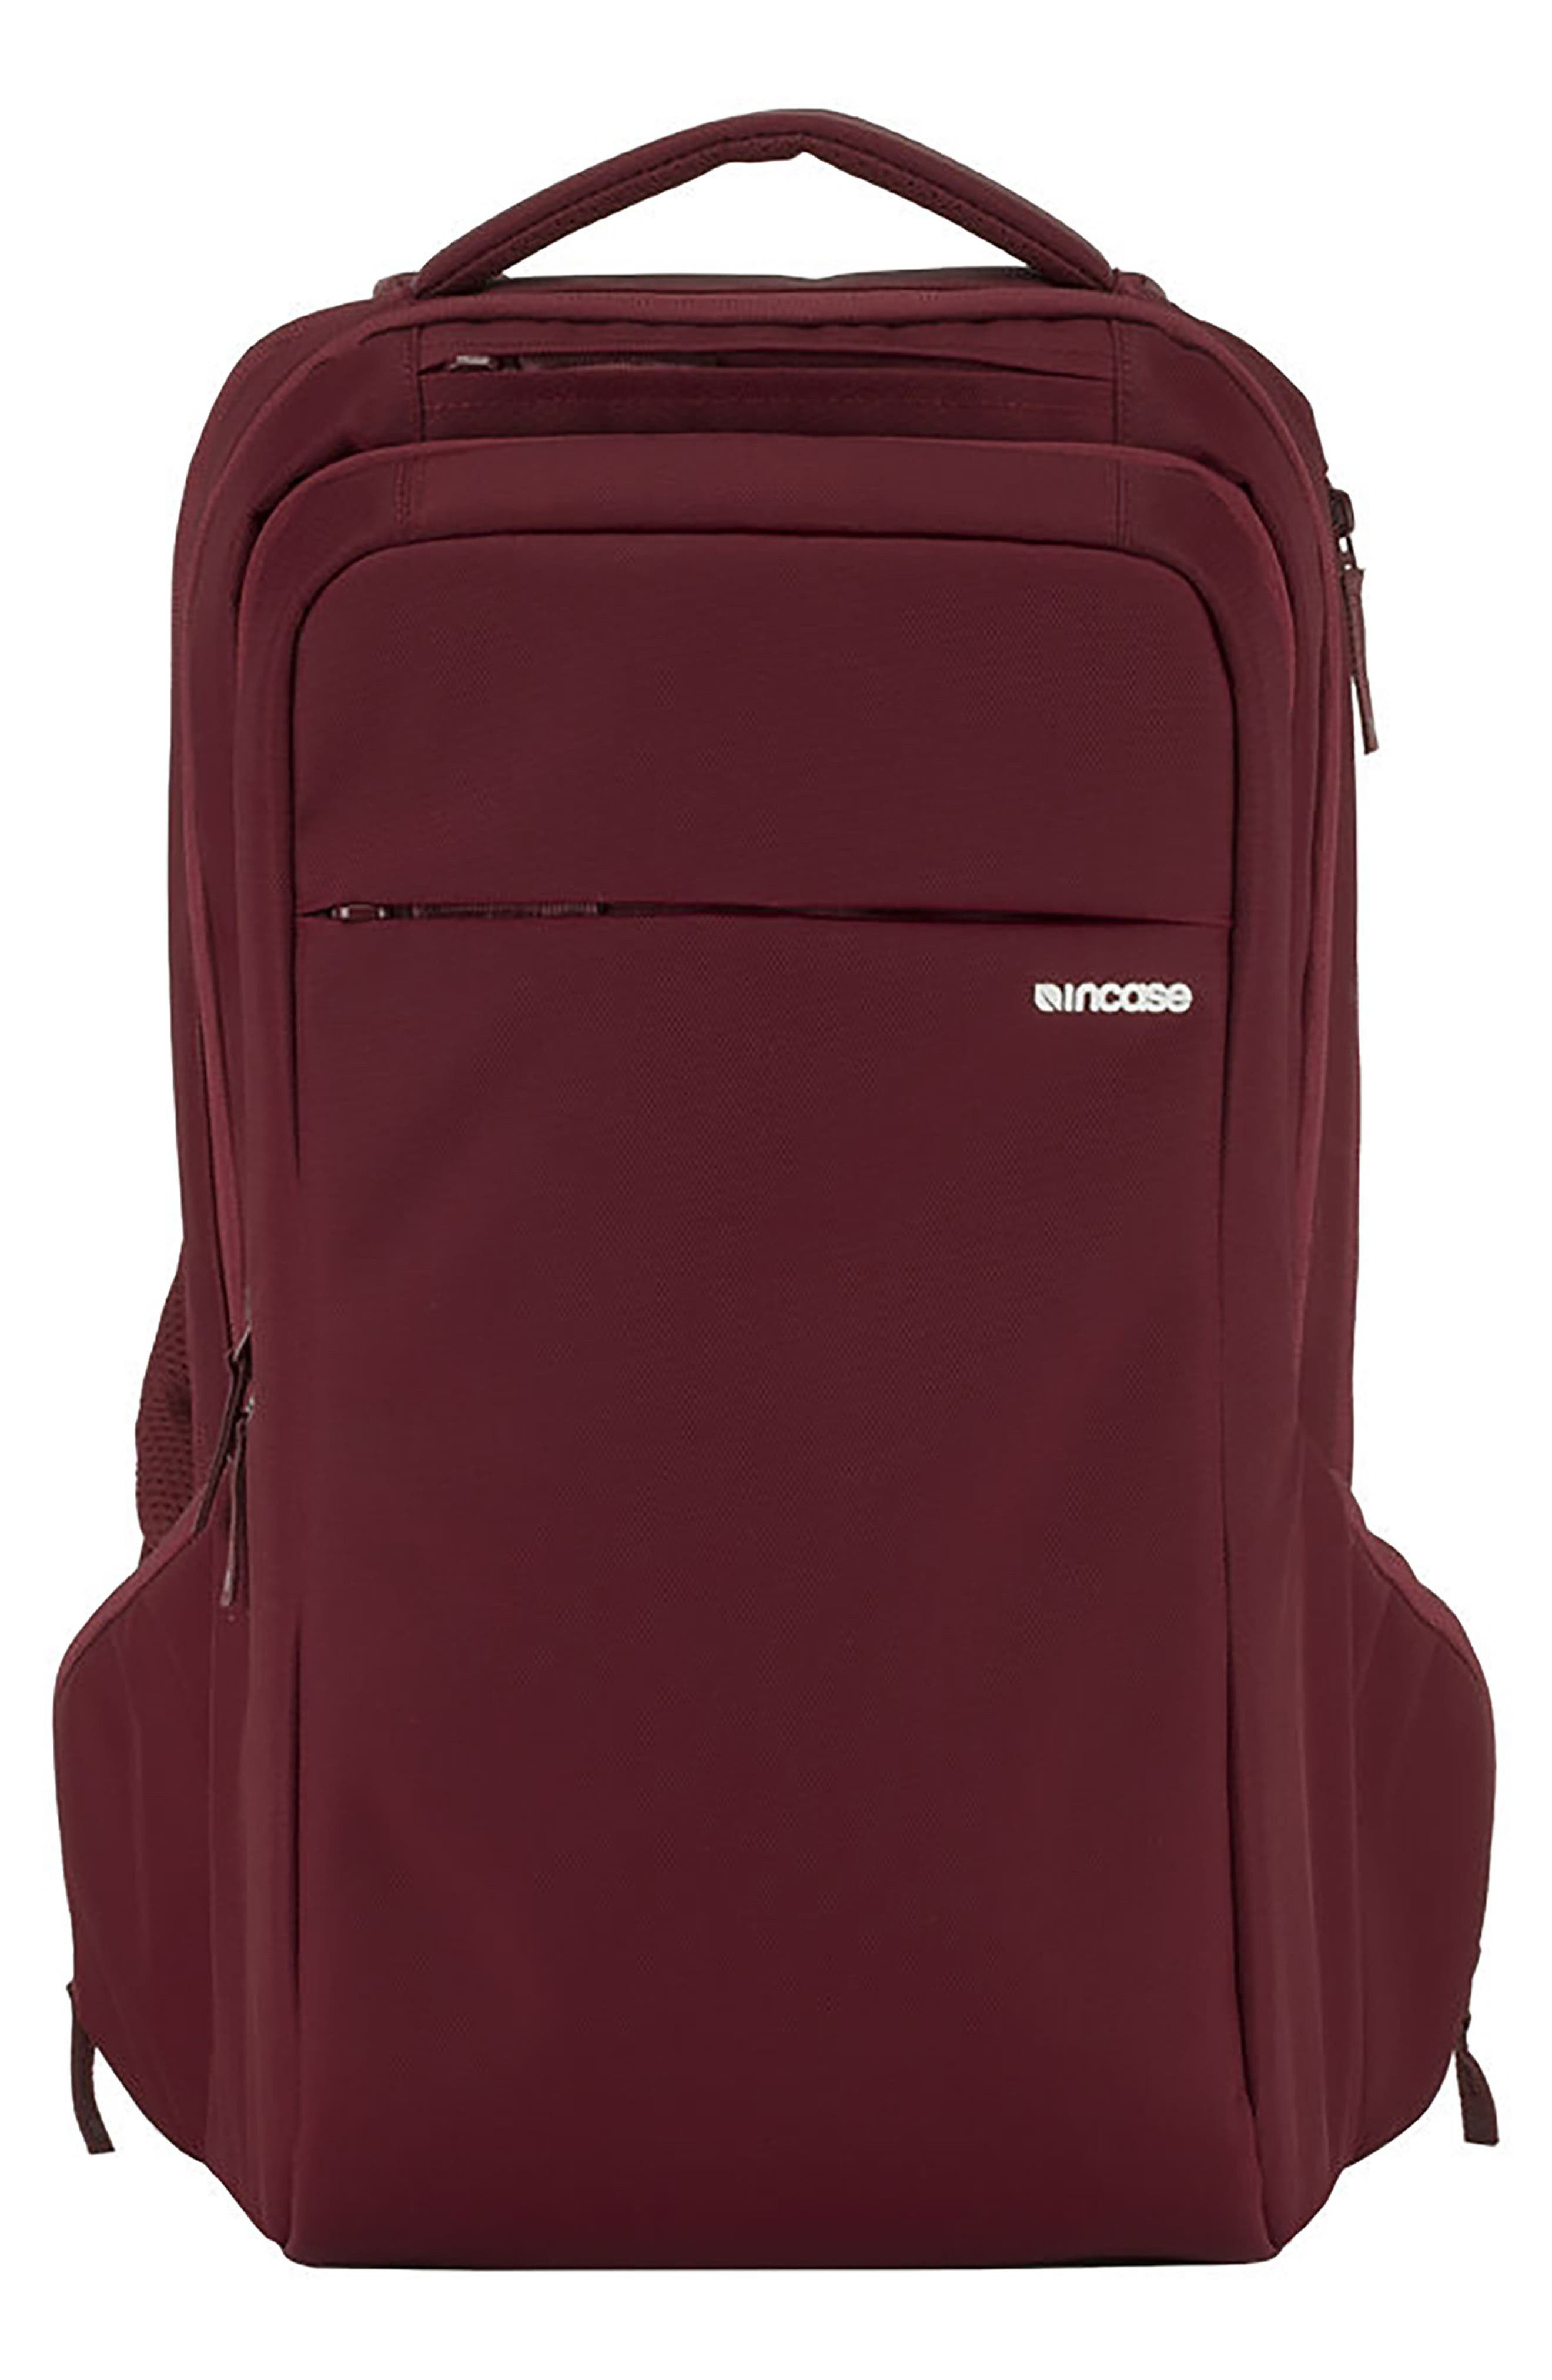 Alternate Image 1 Selected - Incase Designs Icon Backpack